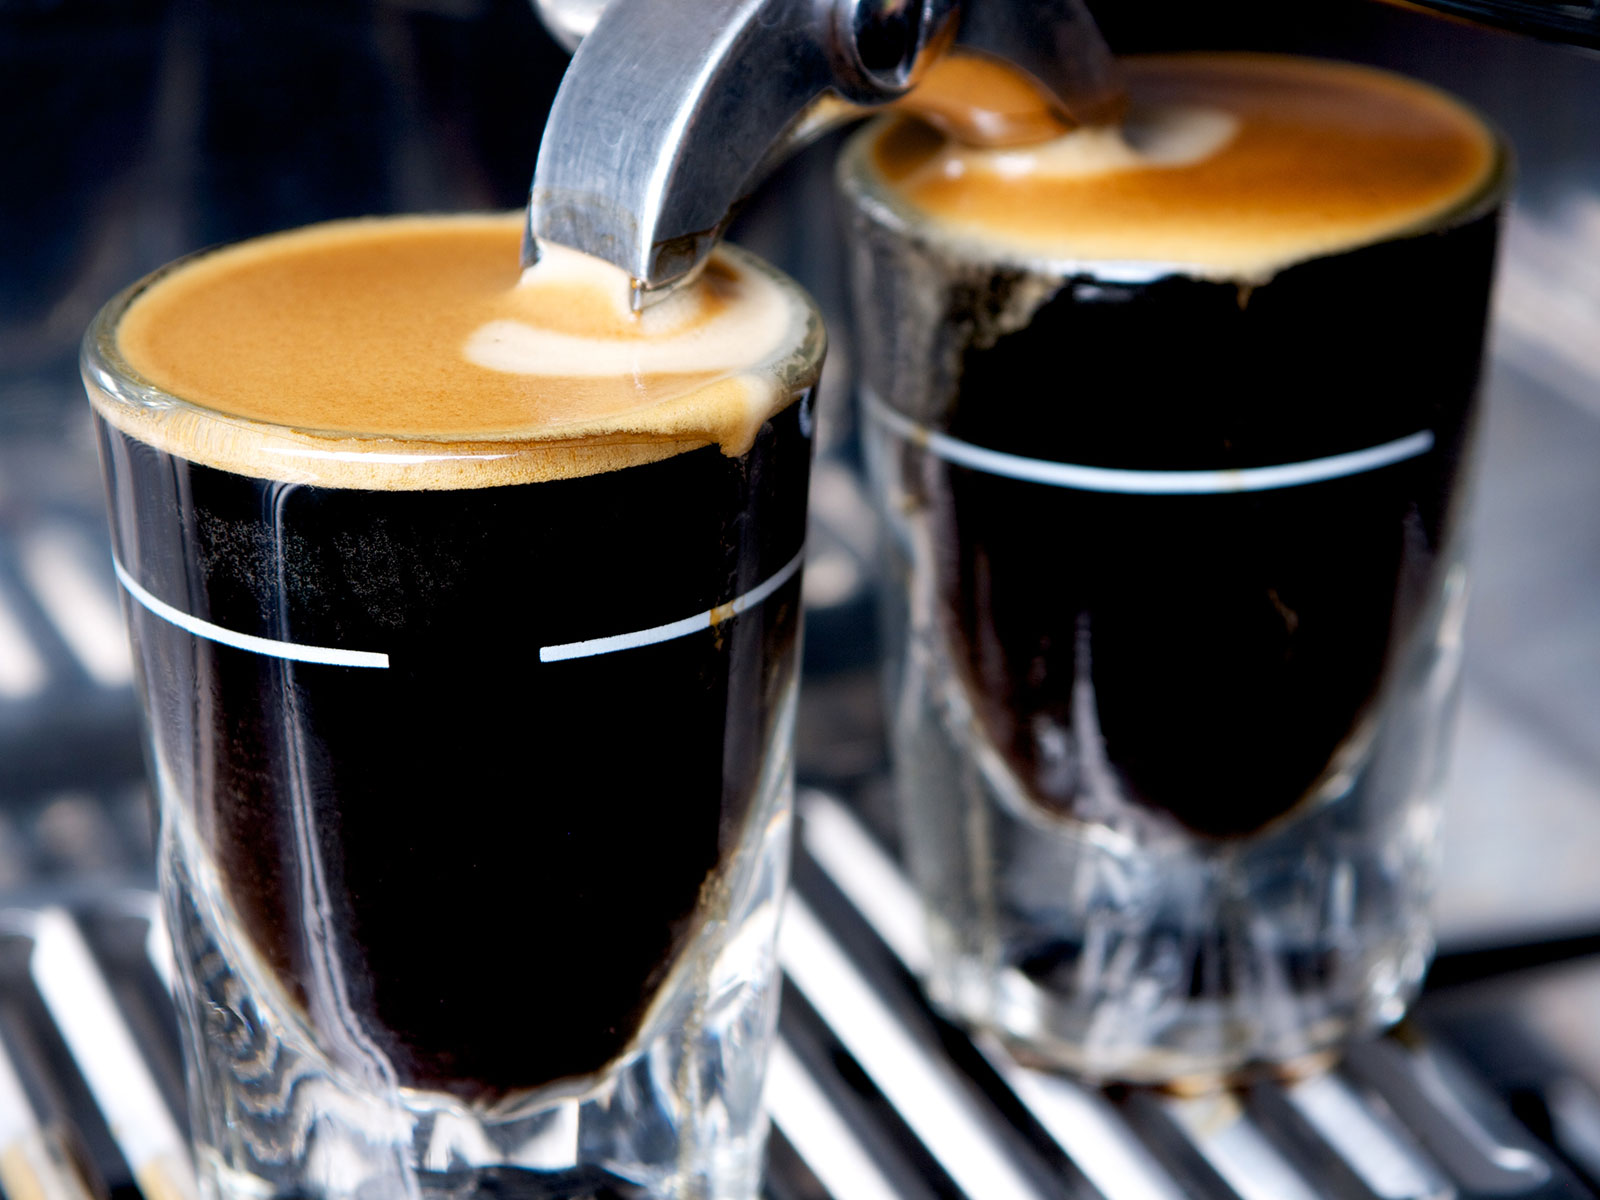 How to Make the Perfect Espresso, According to Science